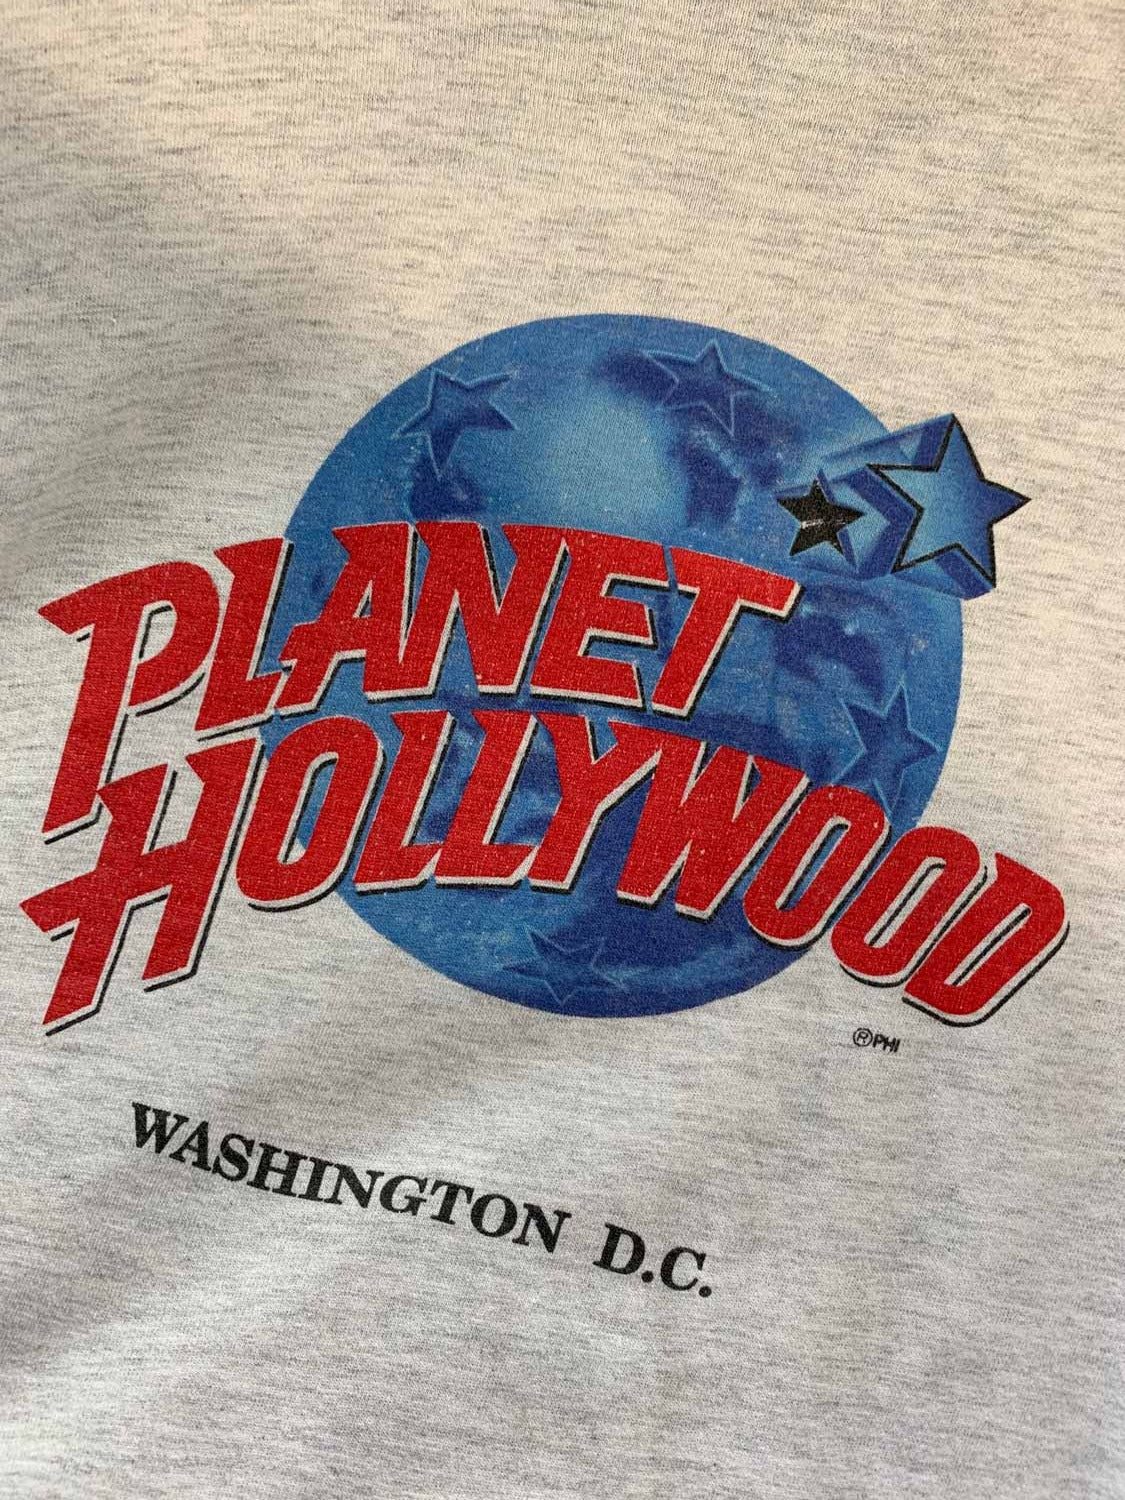 VINTAGE PLANET HOLLYWOOD WASHINGTON D.C.